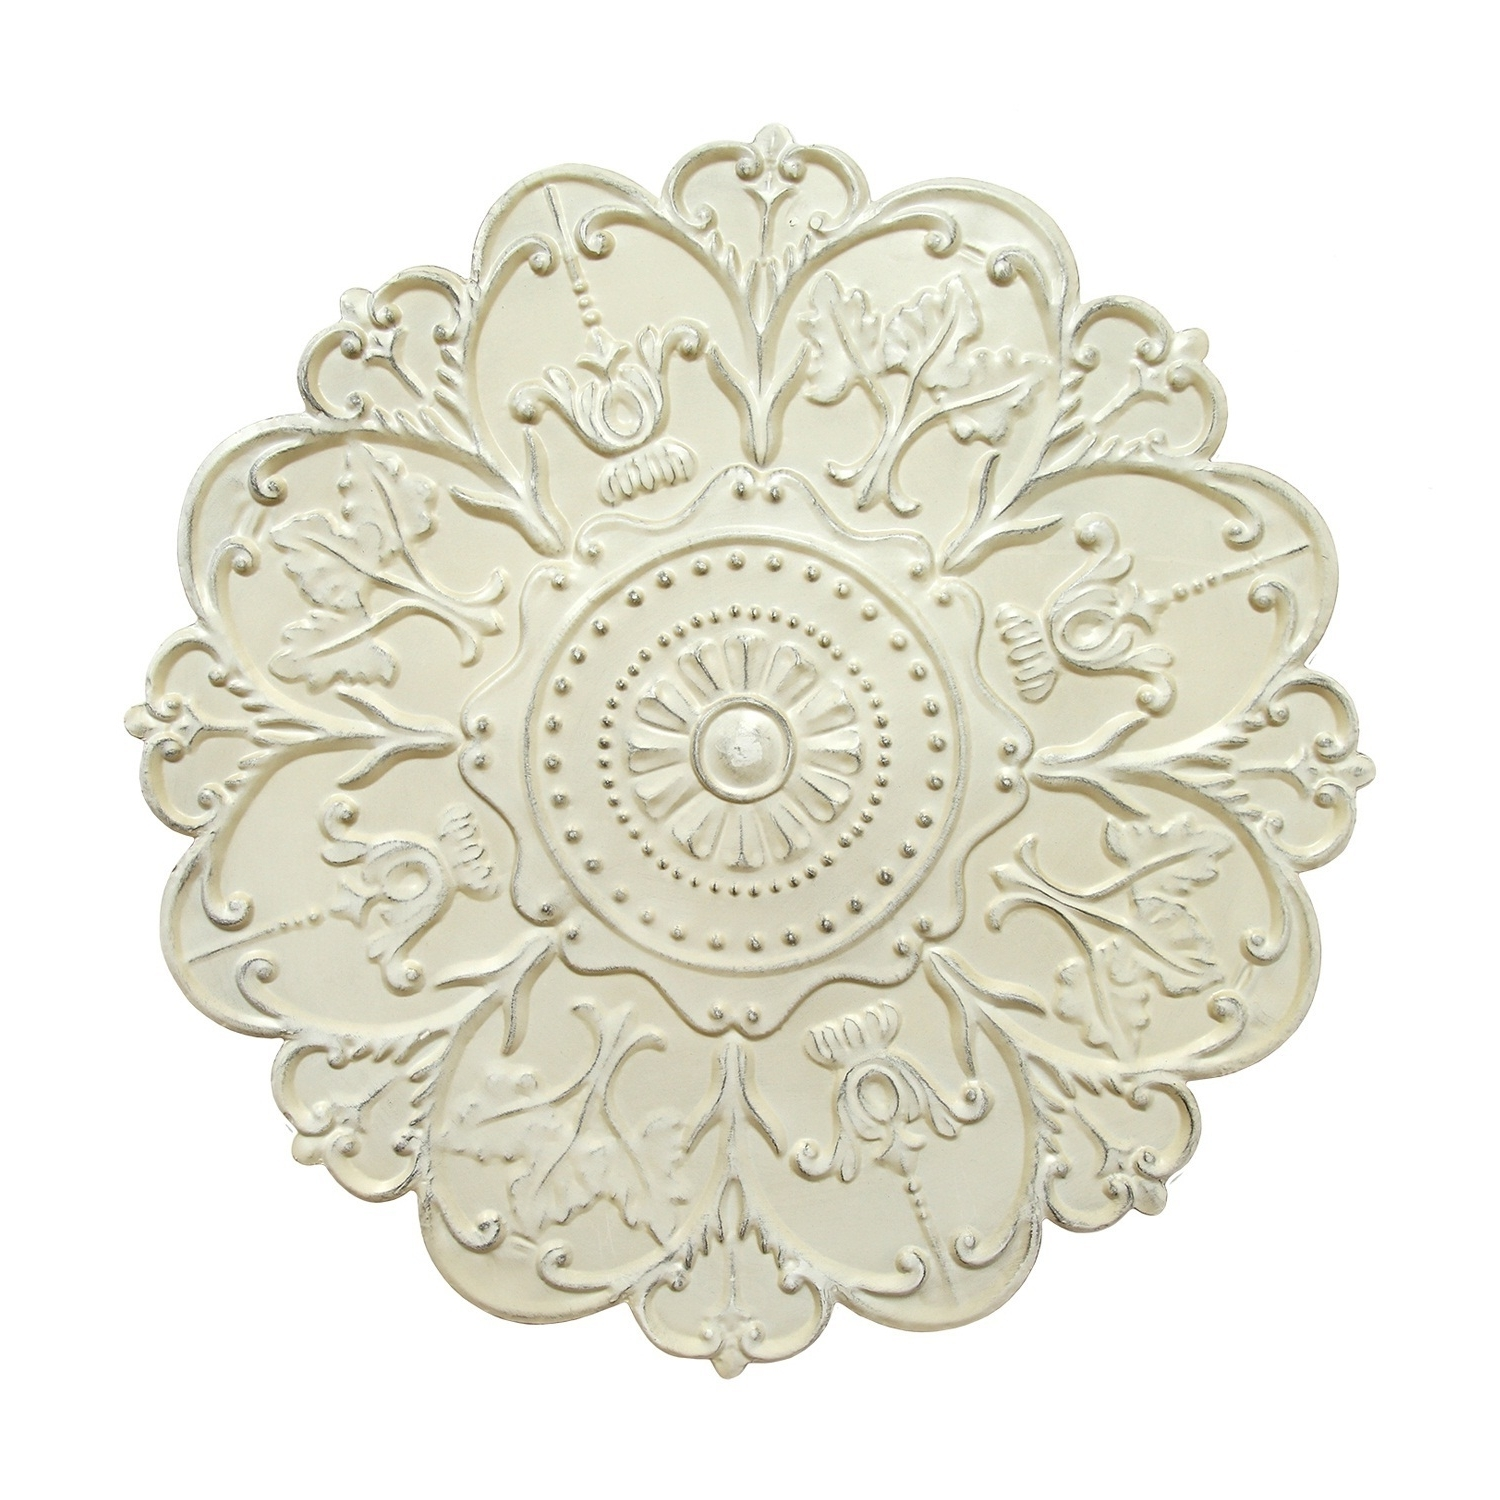 Medallion Wall Art Floral Accent Round Metal Home Decor Shabby White Intended For Most Popular Medallion Wall Art (View 9 of 20)